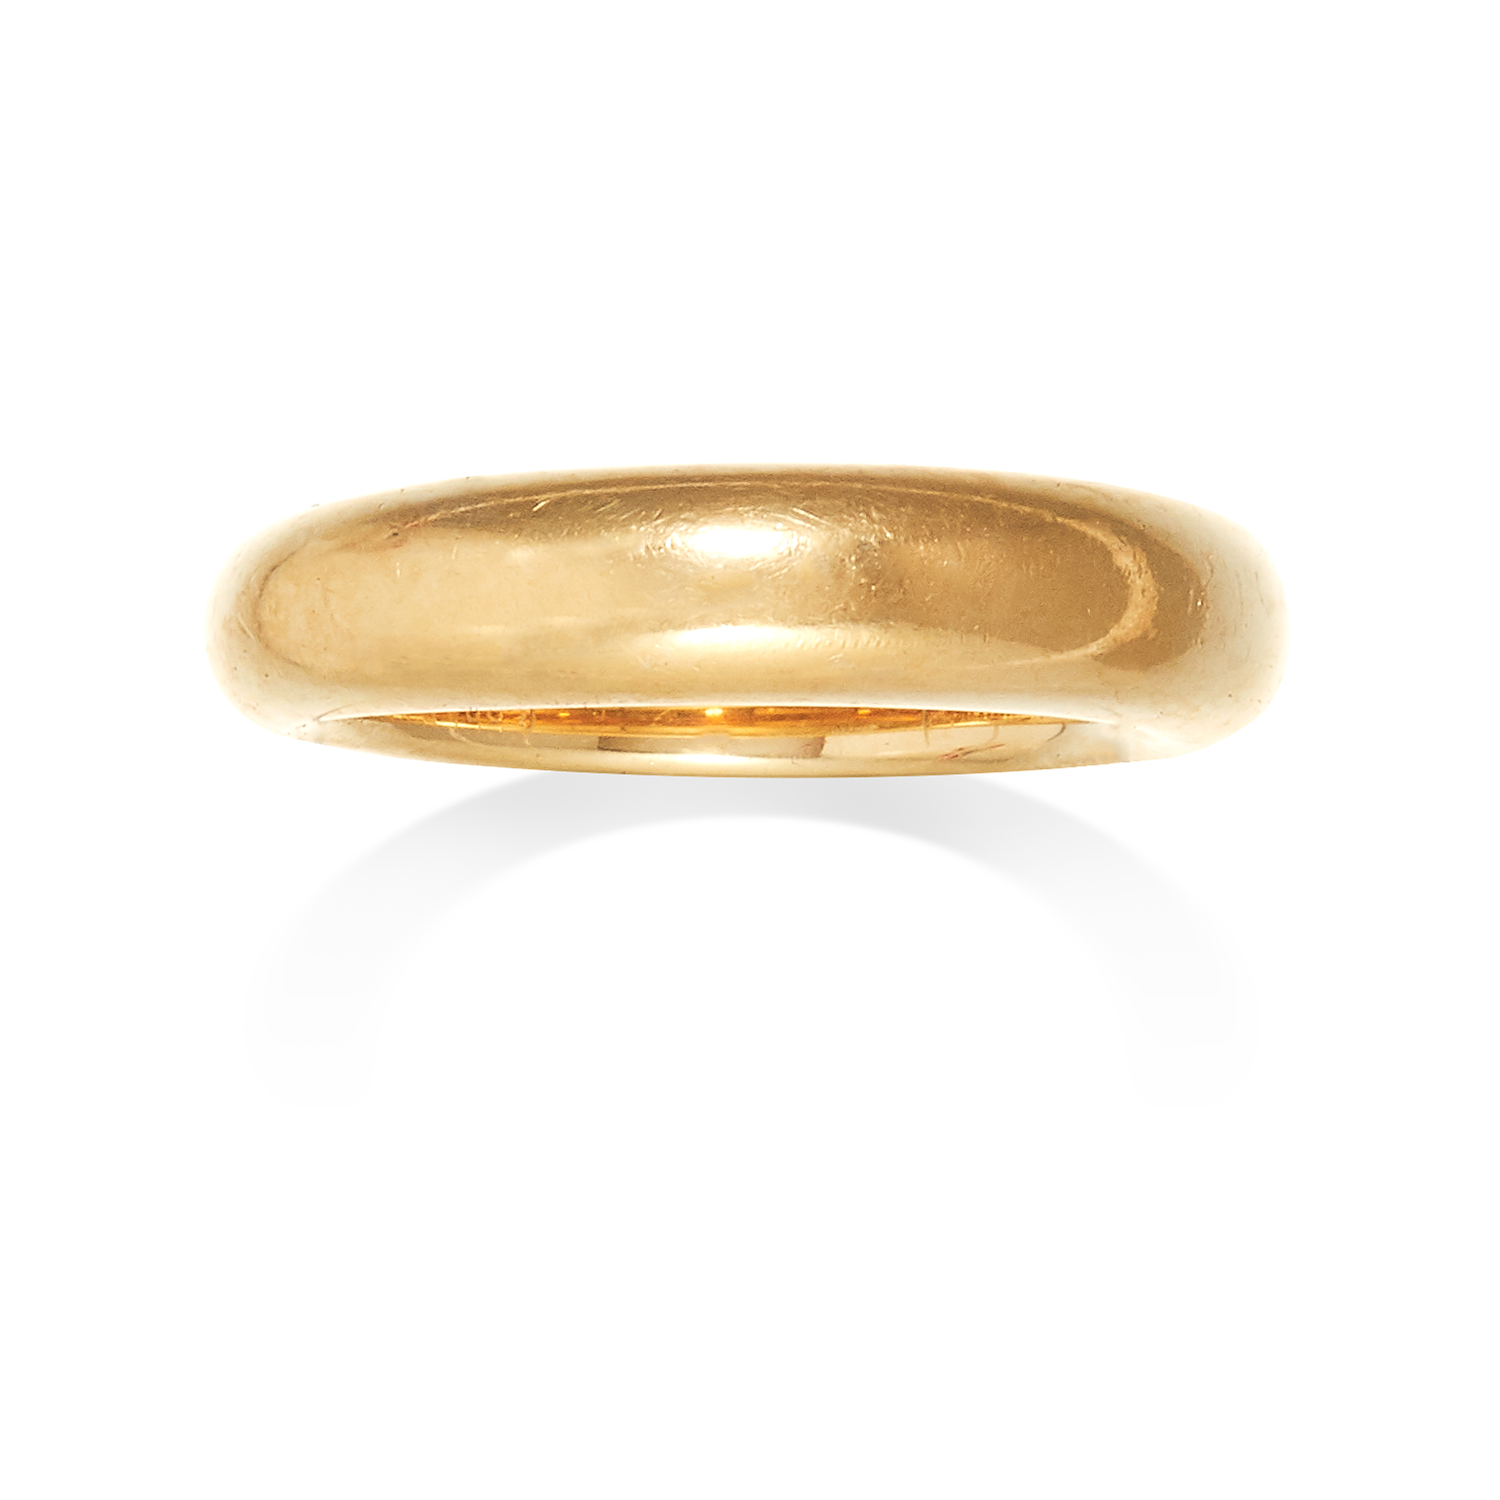 A GOLD RING, CARTIER in 18ct yellow gold, designed as thick gold band, signed Cartier and